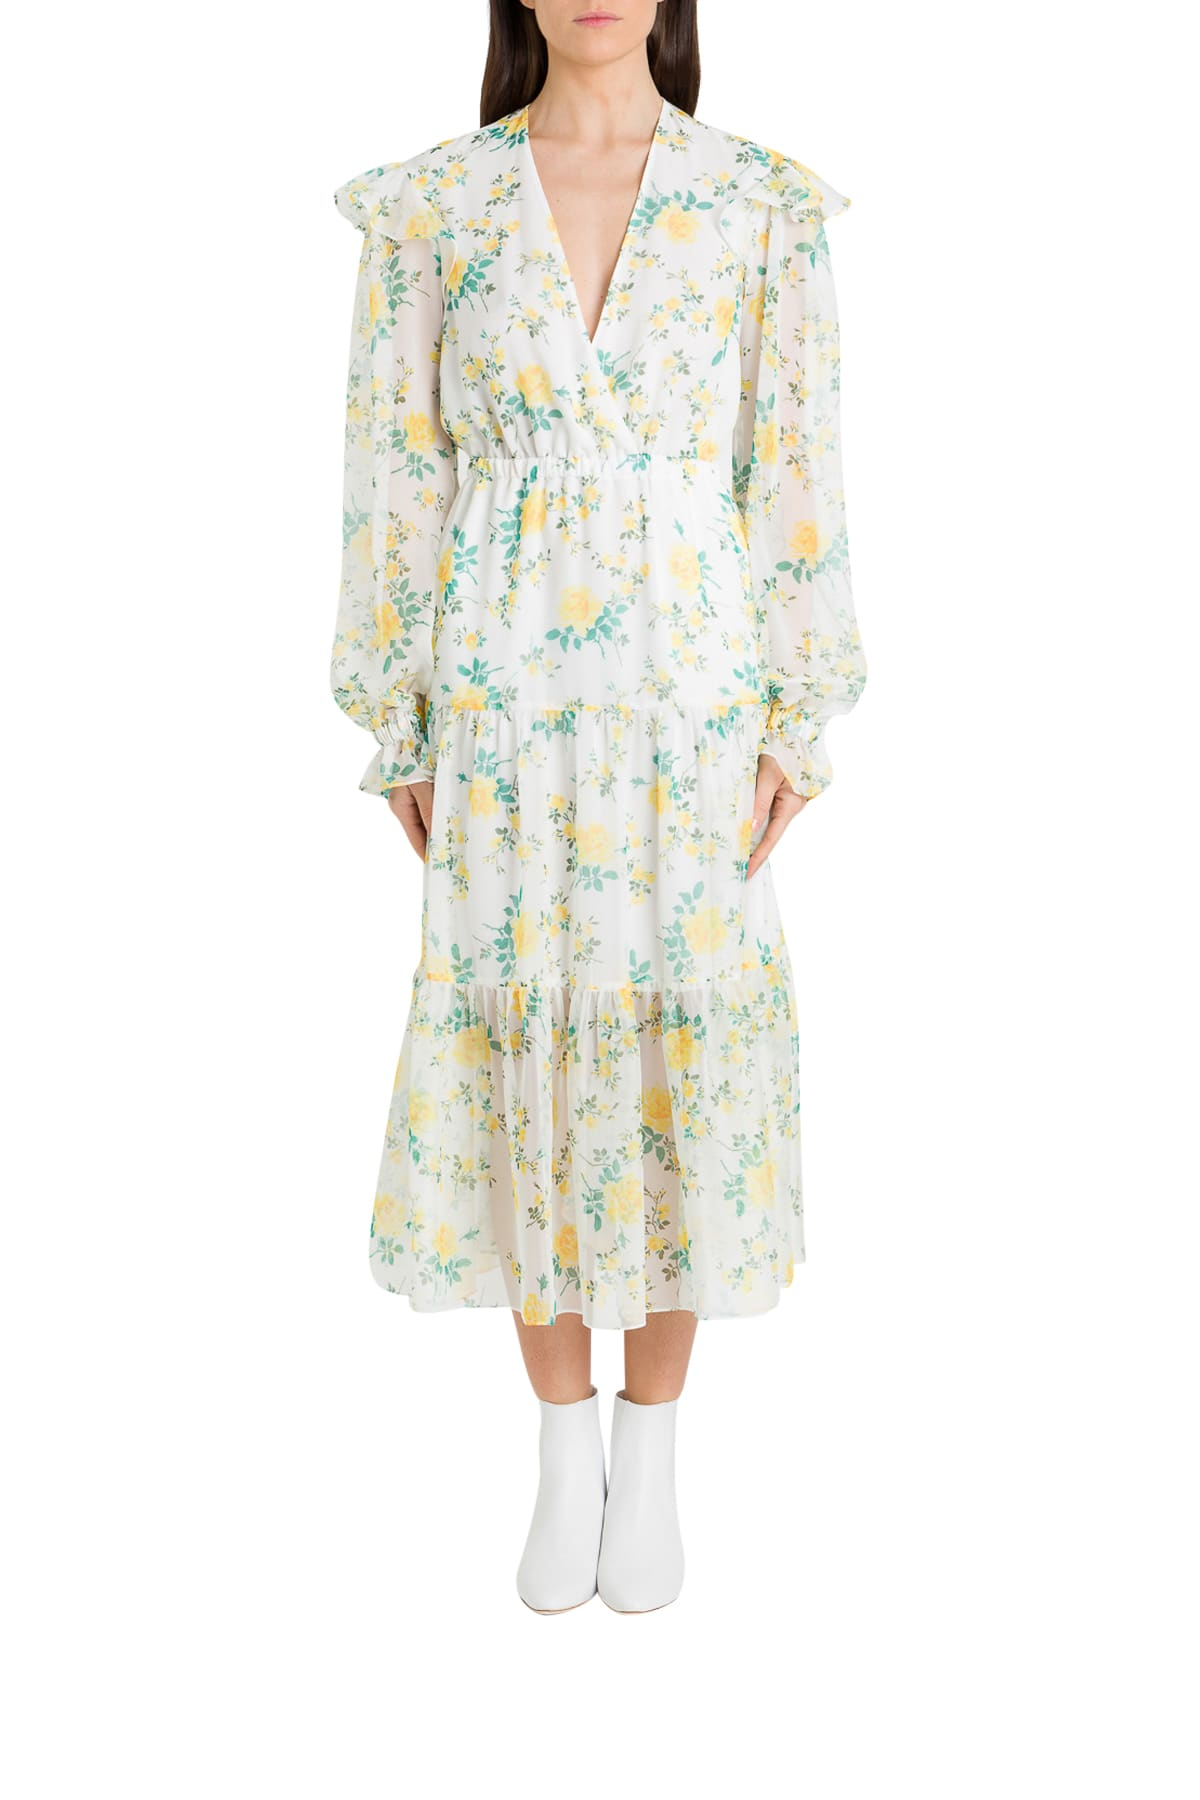 Buy Philosophy di Lorenzo Serafini Voile Floral Dress online, shop Philosophy di Lorenzo Serafini with free shipping